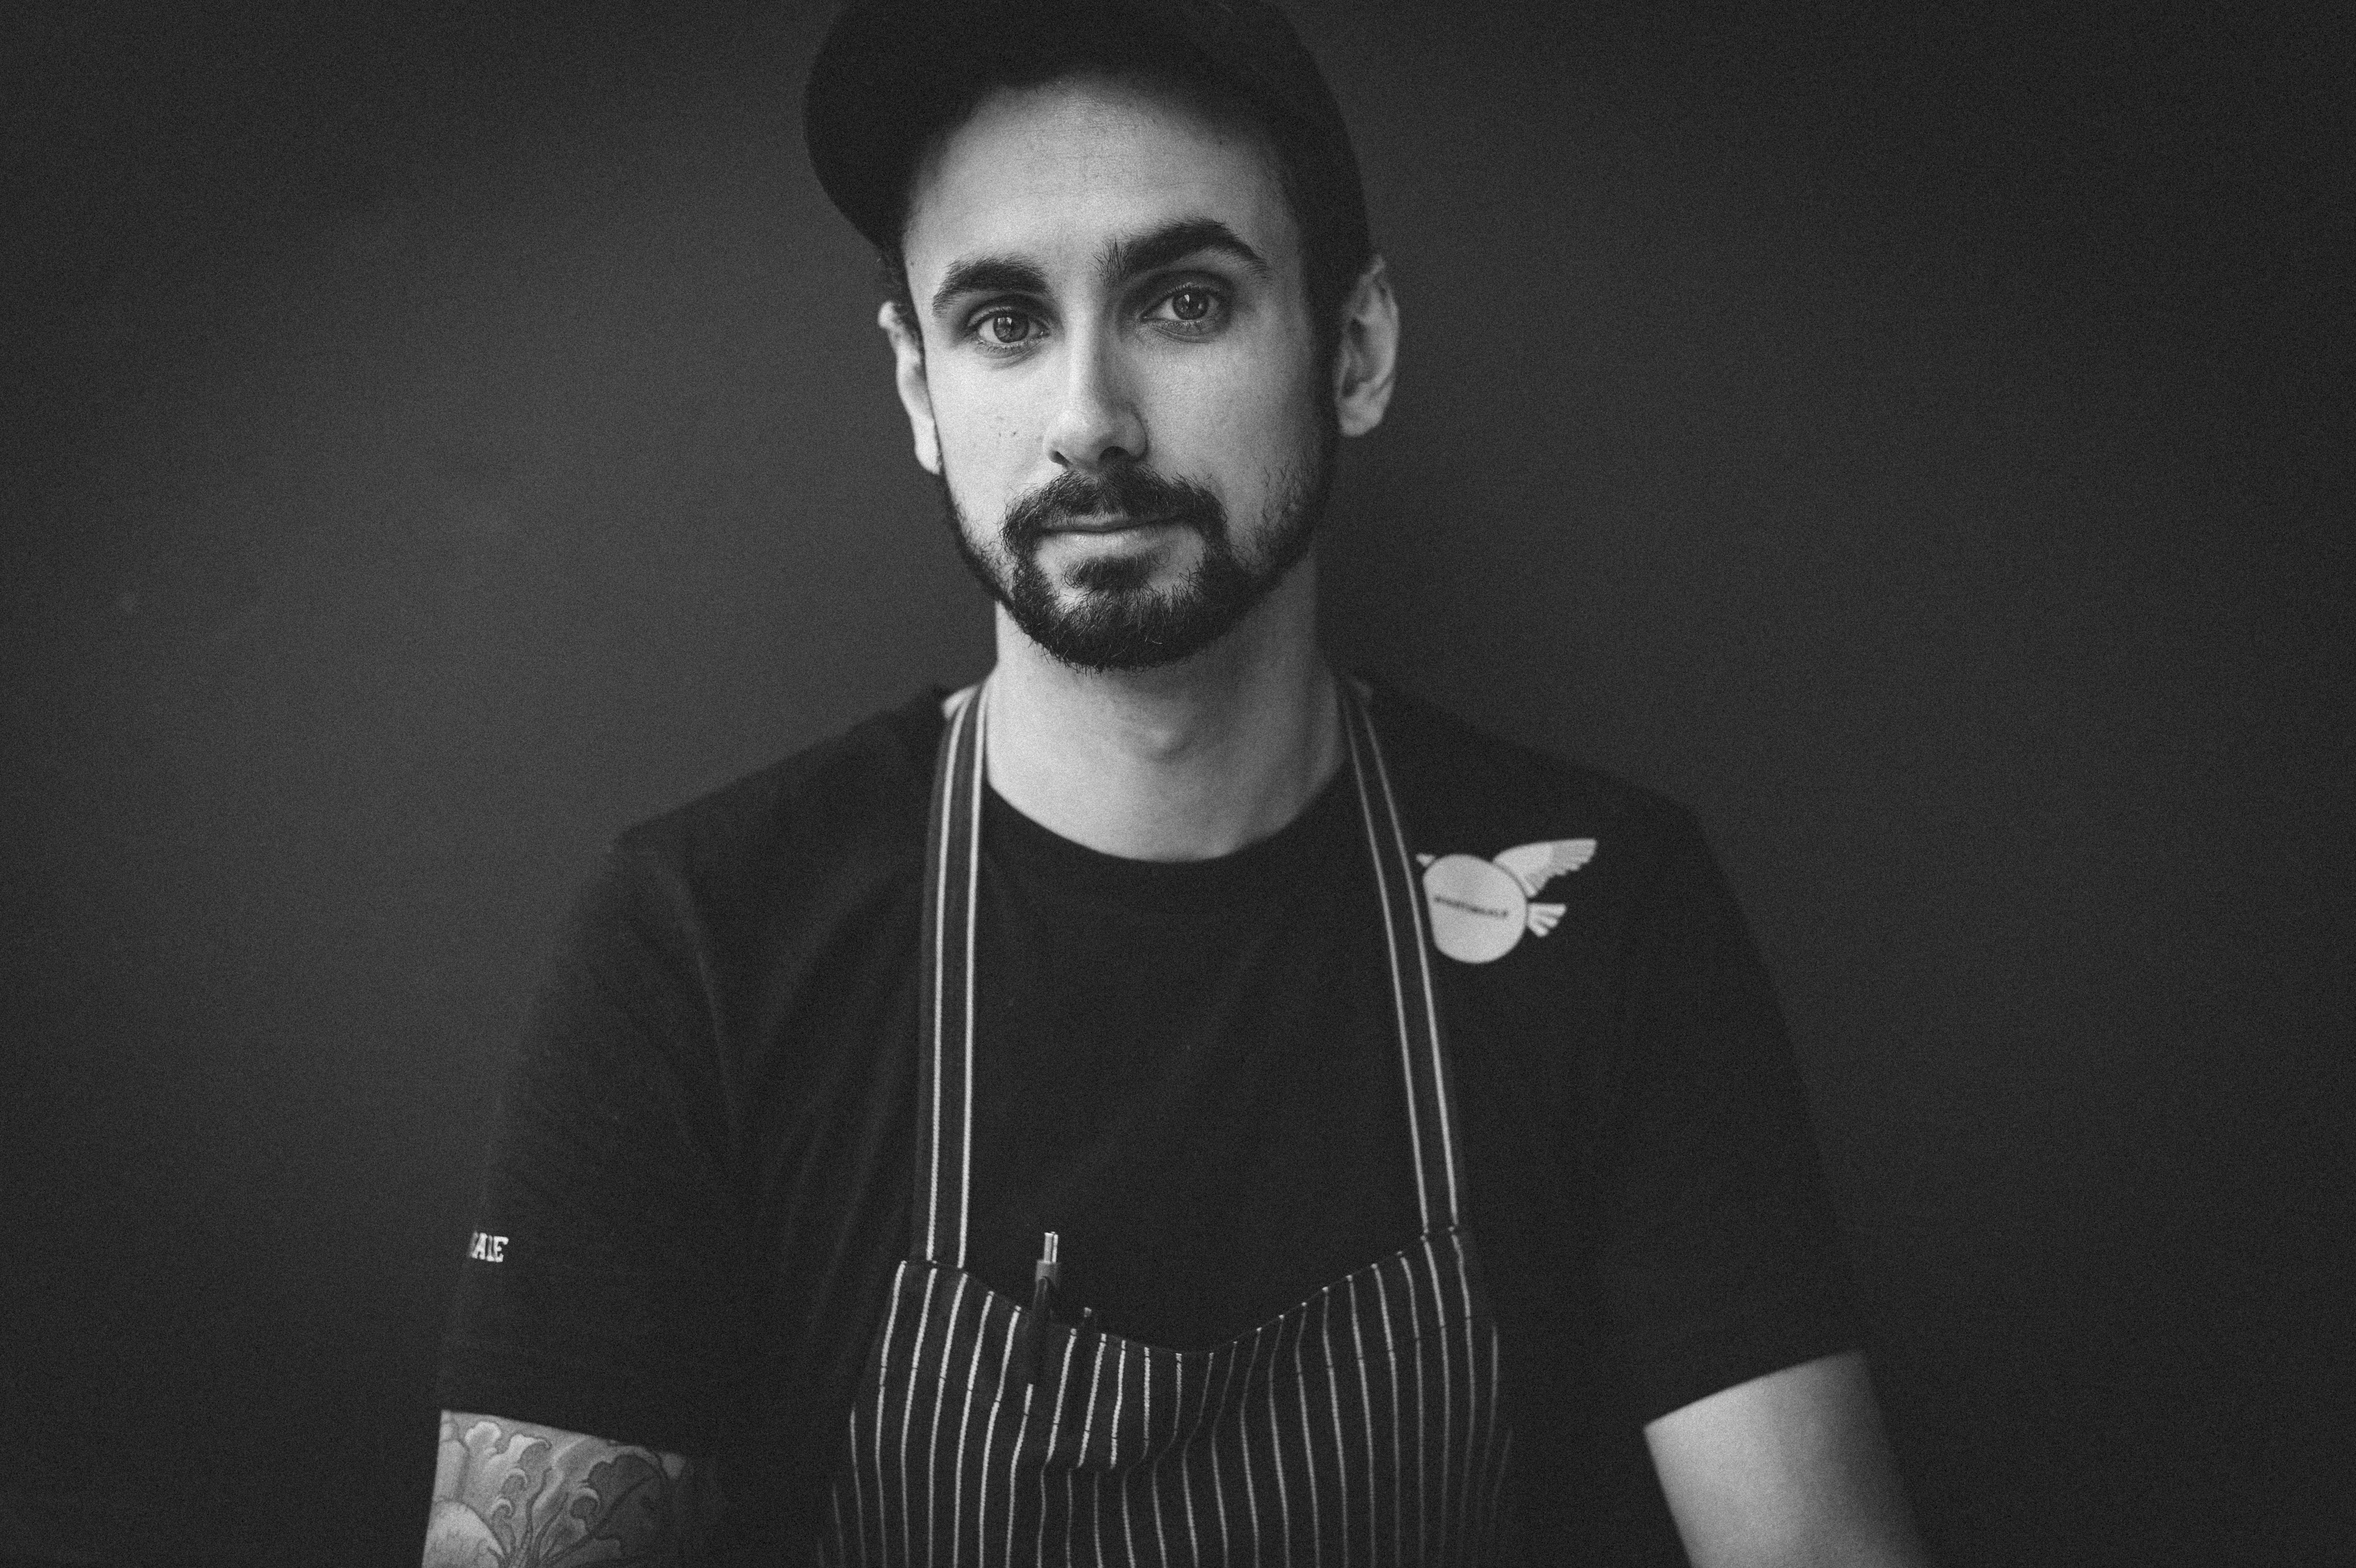 Nightingale Restaurant's Chef Phil Scarfone competes on Food Network Canada's Top Chef Canada